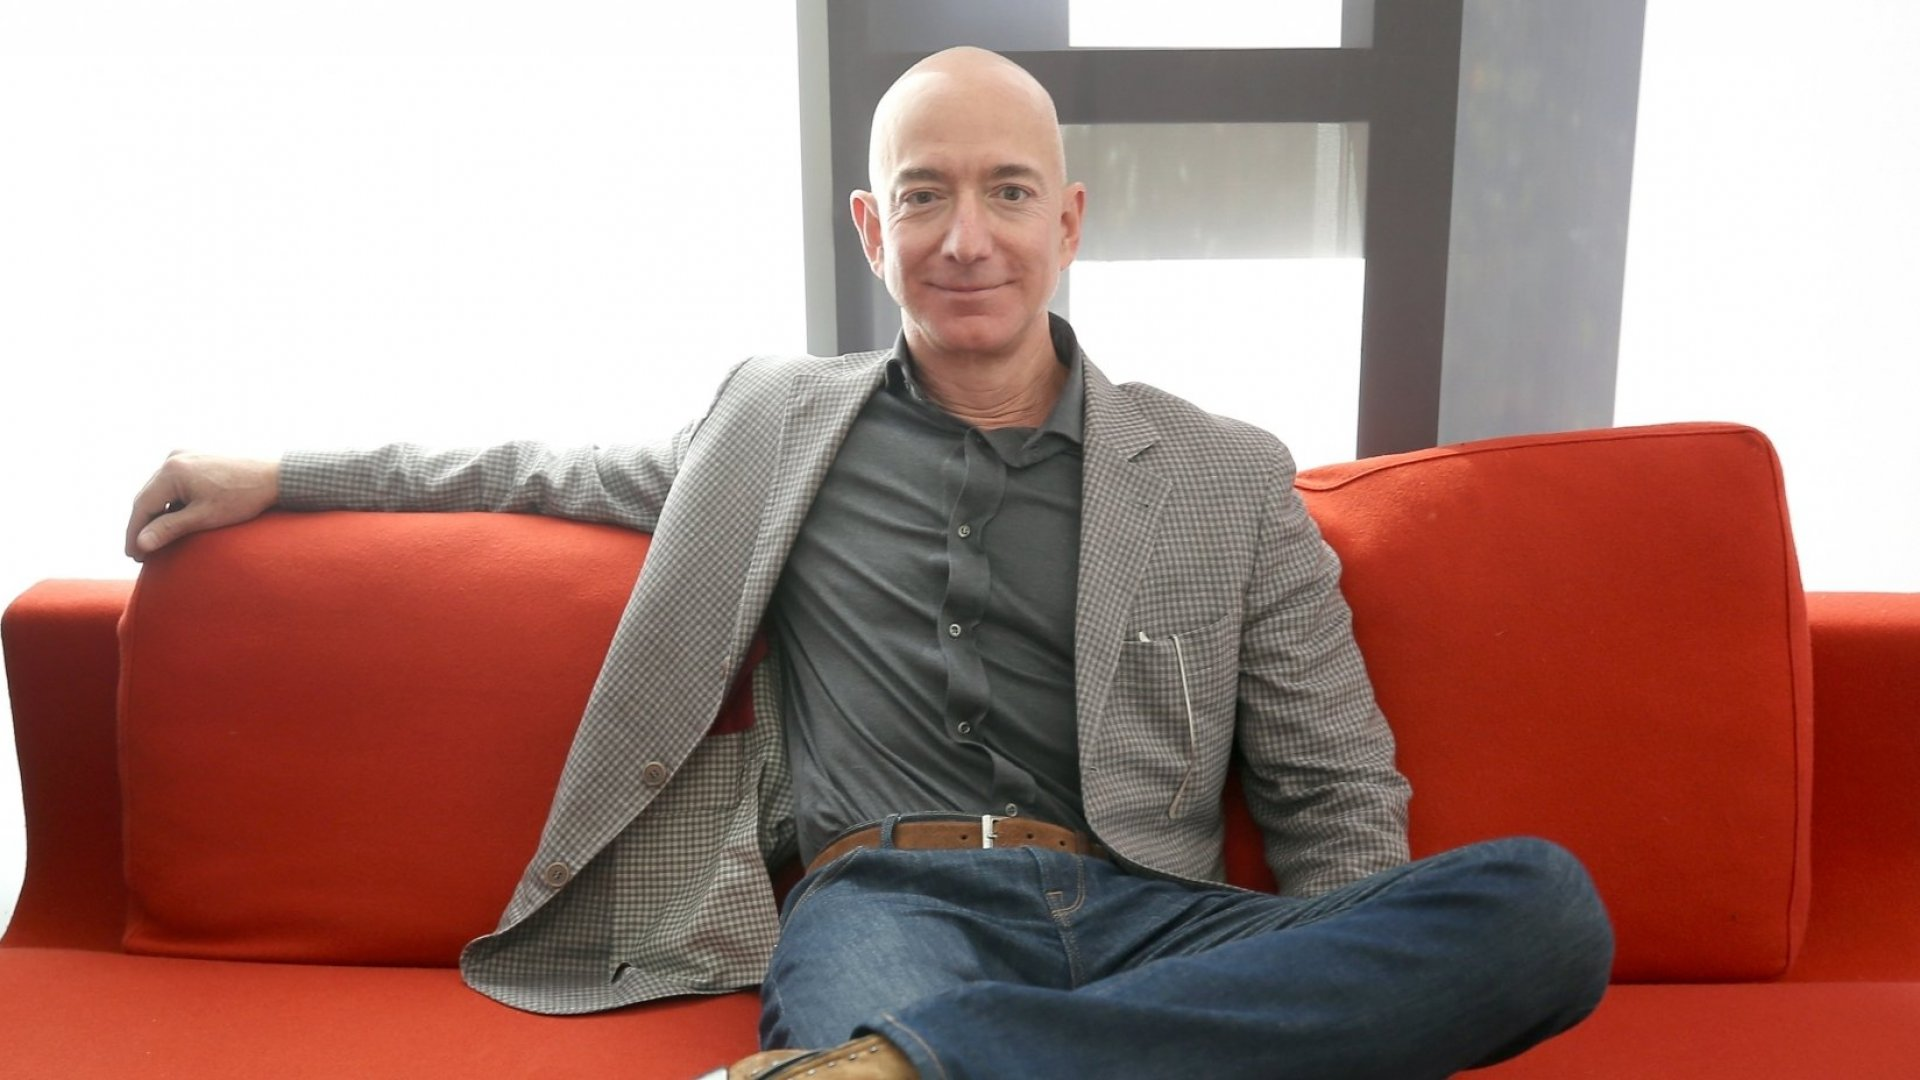 Jeff Bezos Says This 1 Thing Will Help You Achieve Tremendous Focus